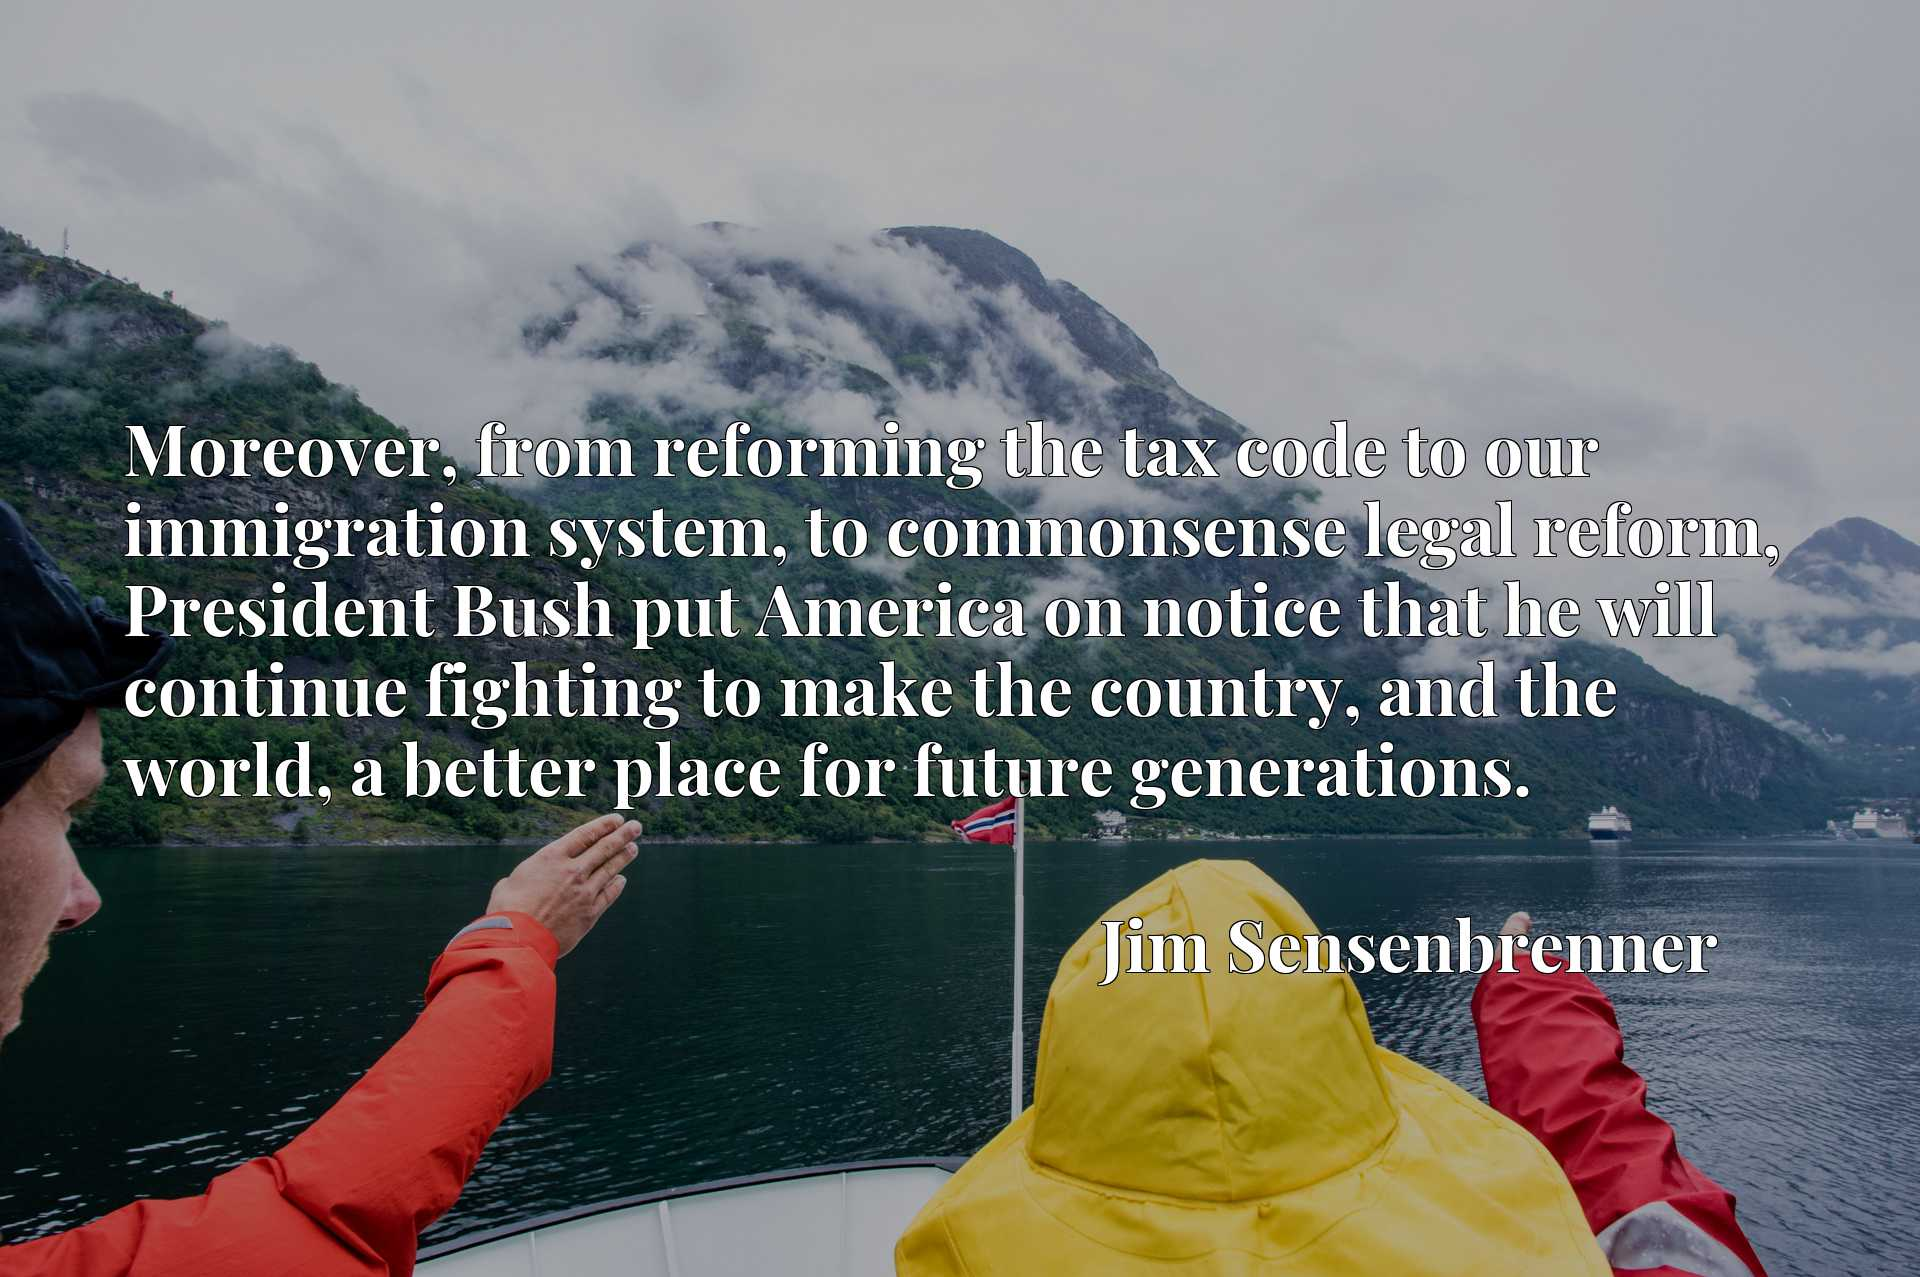 Quote Picture :Moreover, from reforming the tax code to our immigration system, to commonsense legal reform, President Bush put America on notice that he will continue fighting to make the country, and the world, a better place for future generations.